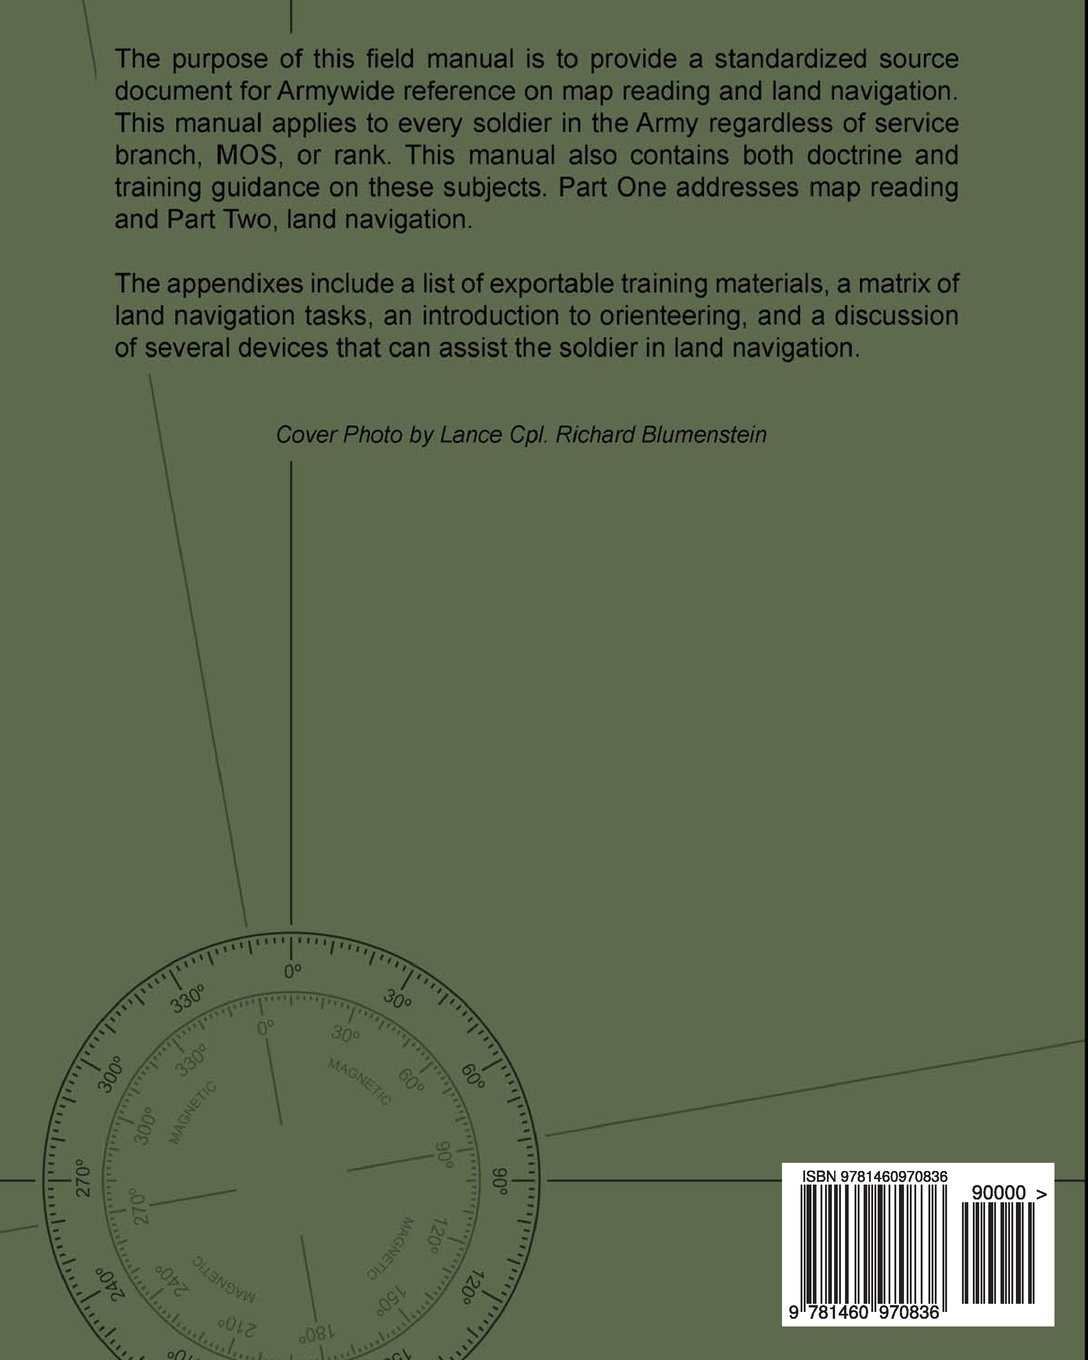 Map Reading And Land Navigation FM Department Of The - Us army guide to map reading and navigation